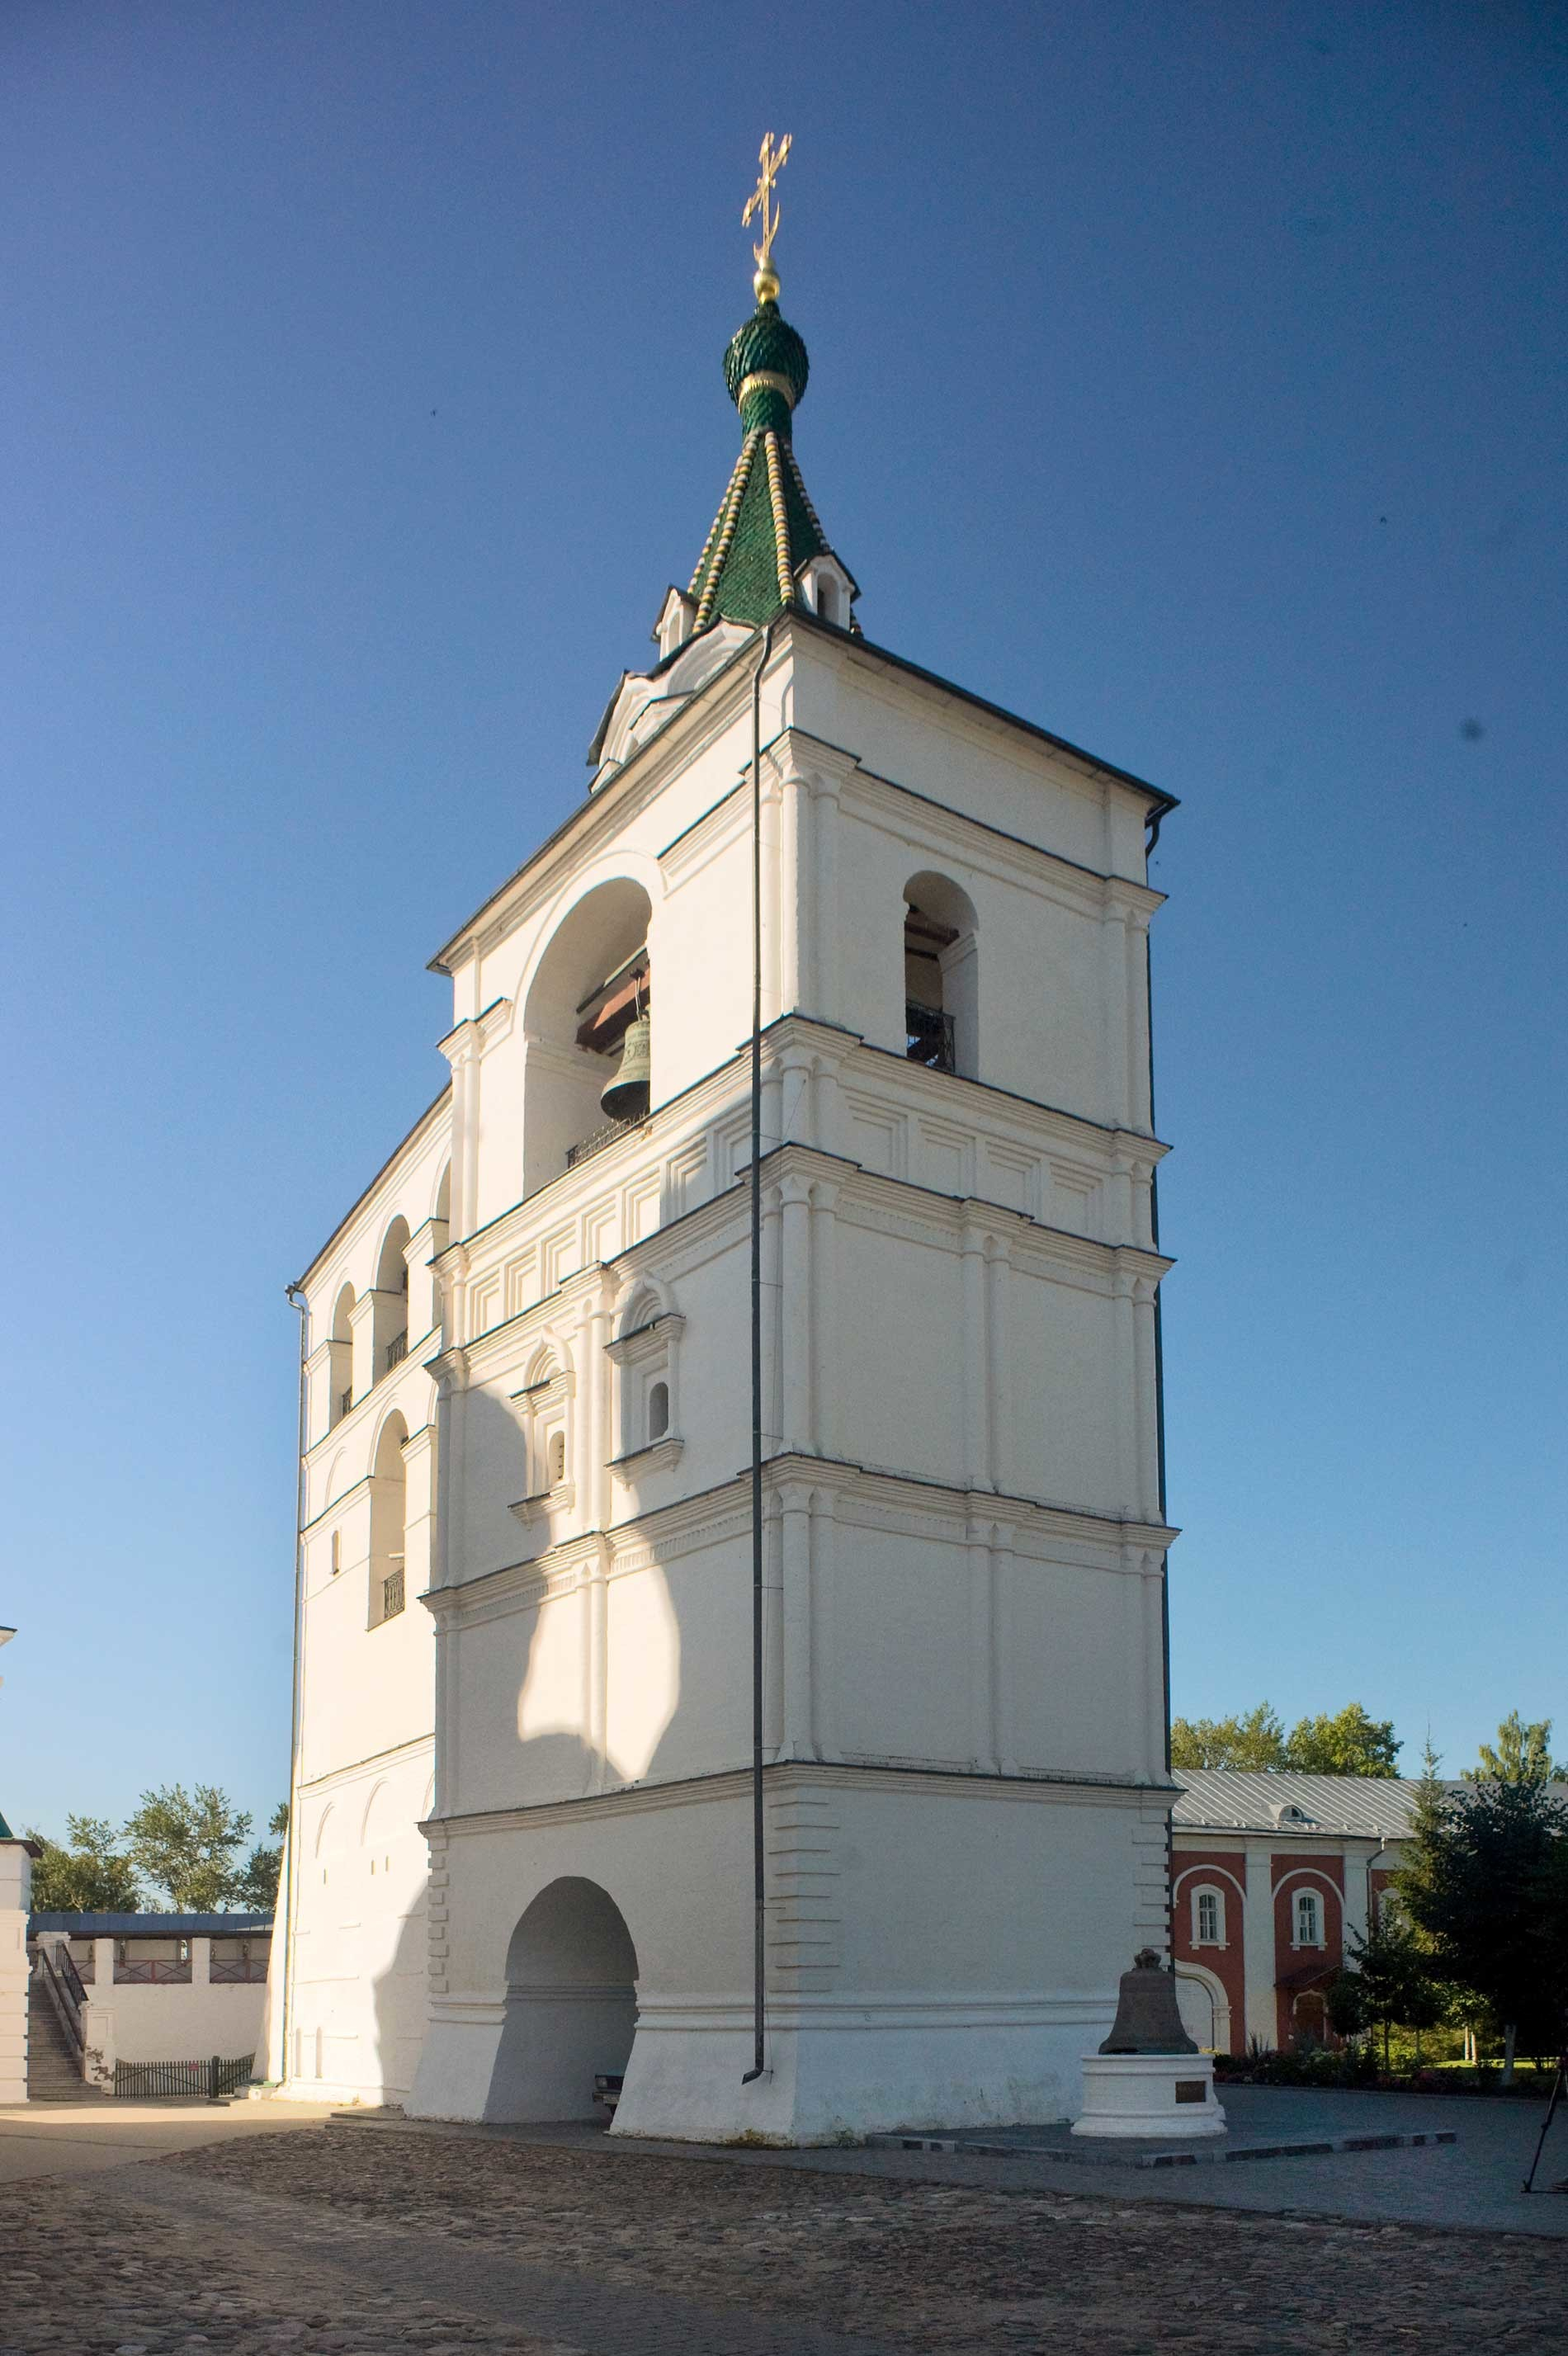 Trinity-Ipatiev Monastery. Cathedral bell tower, northeast view. Aug. 13, 2017.